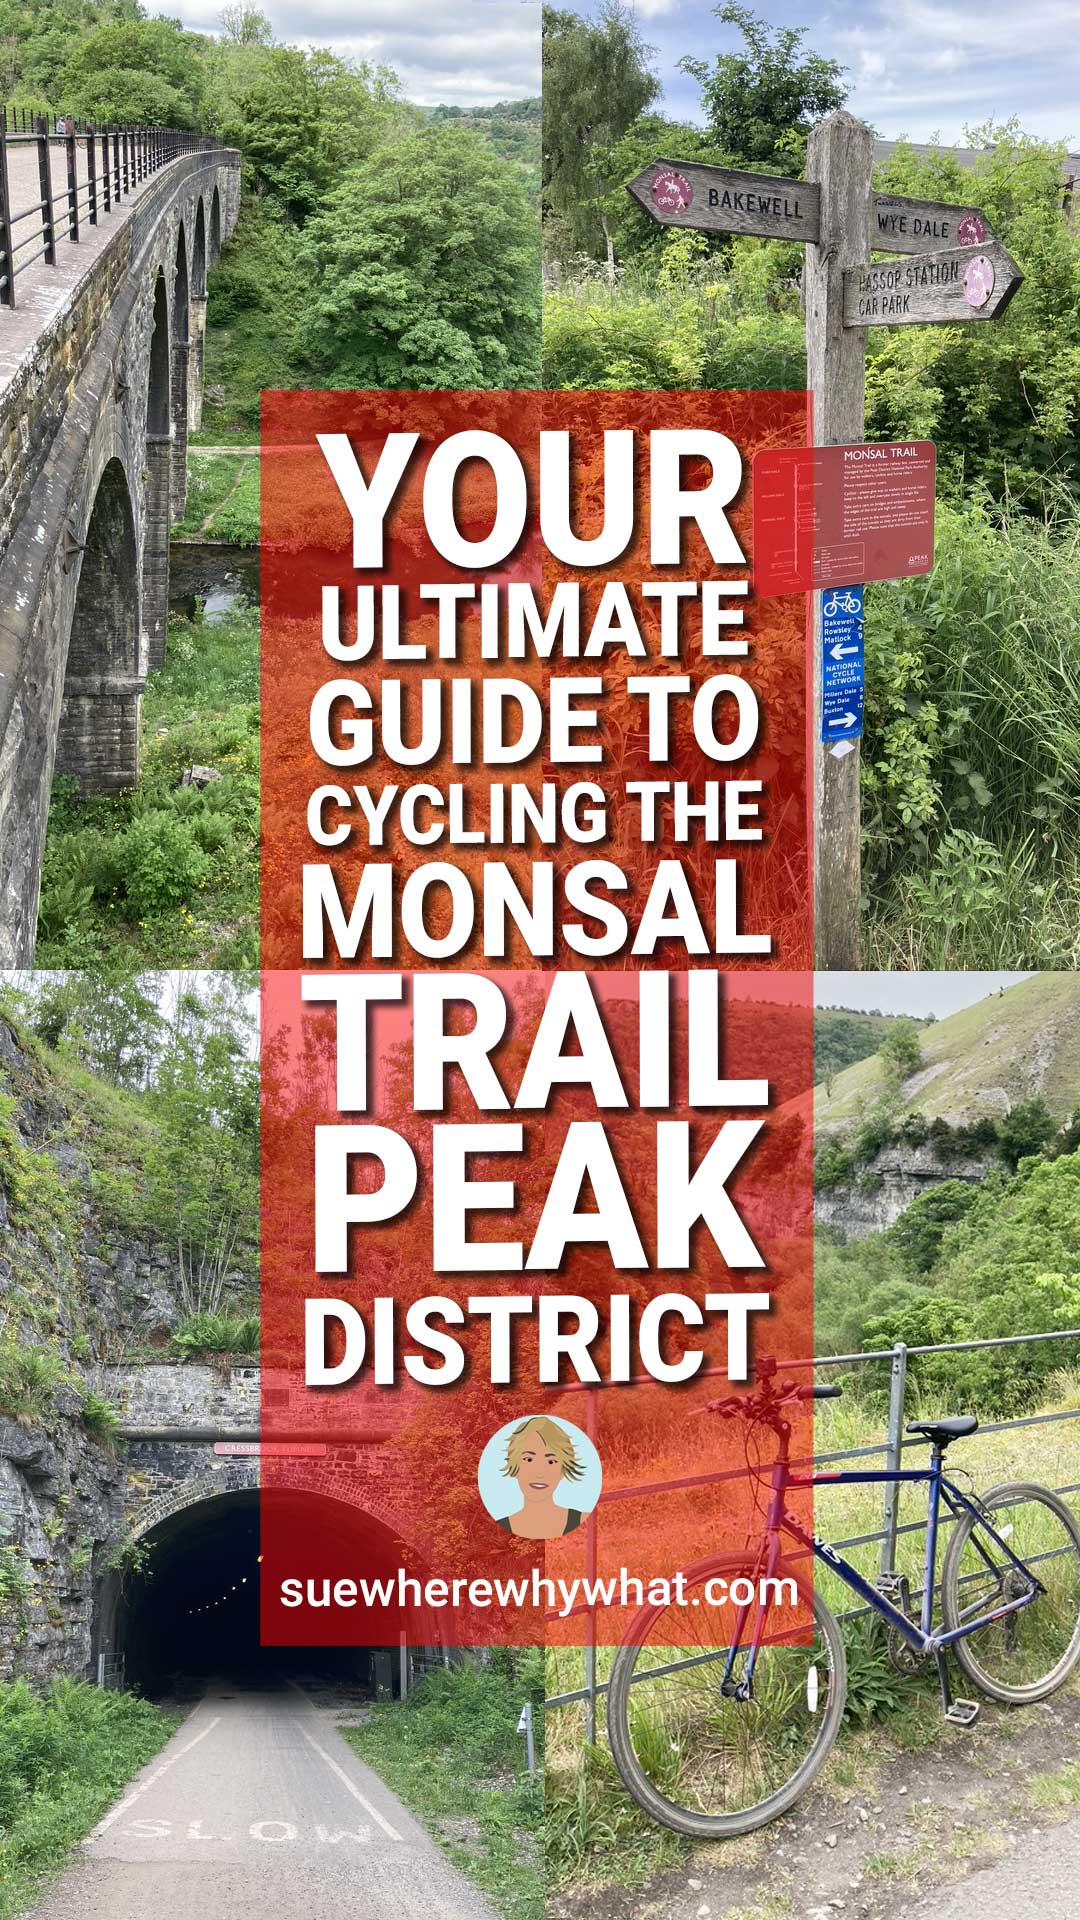 Monsal Trail Cycling in the Peak District – Everything you need to know